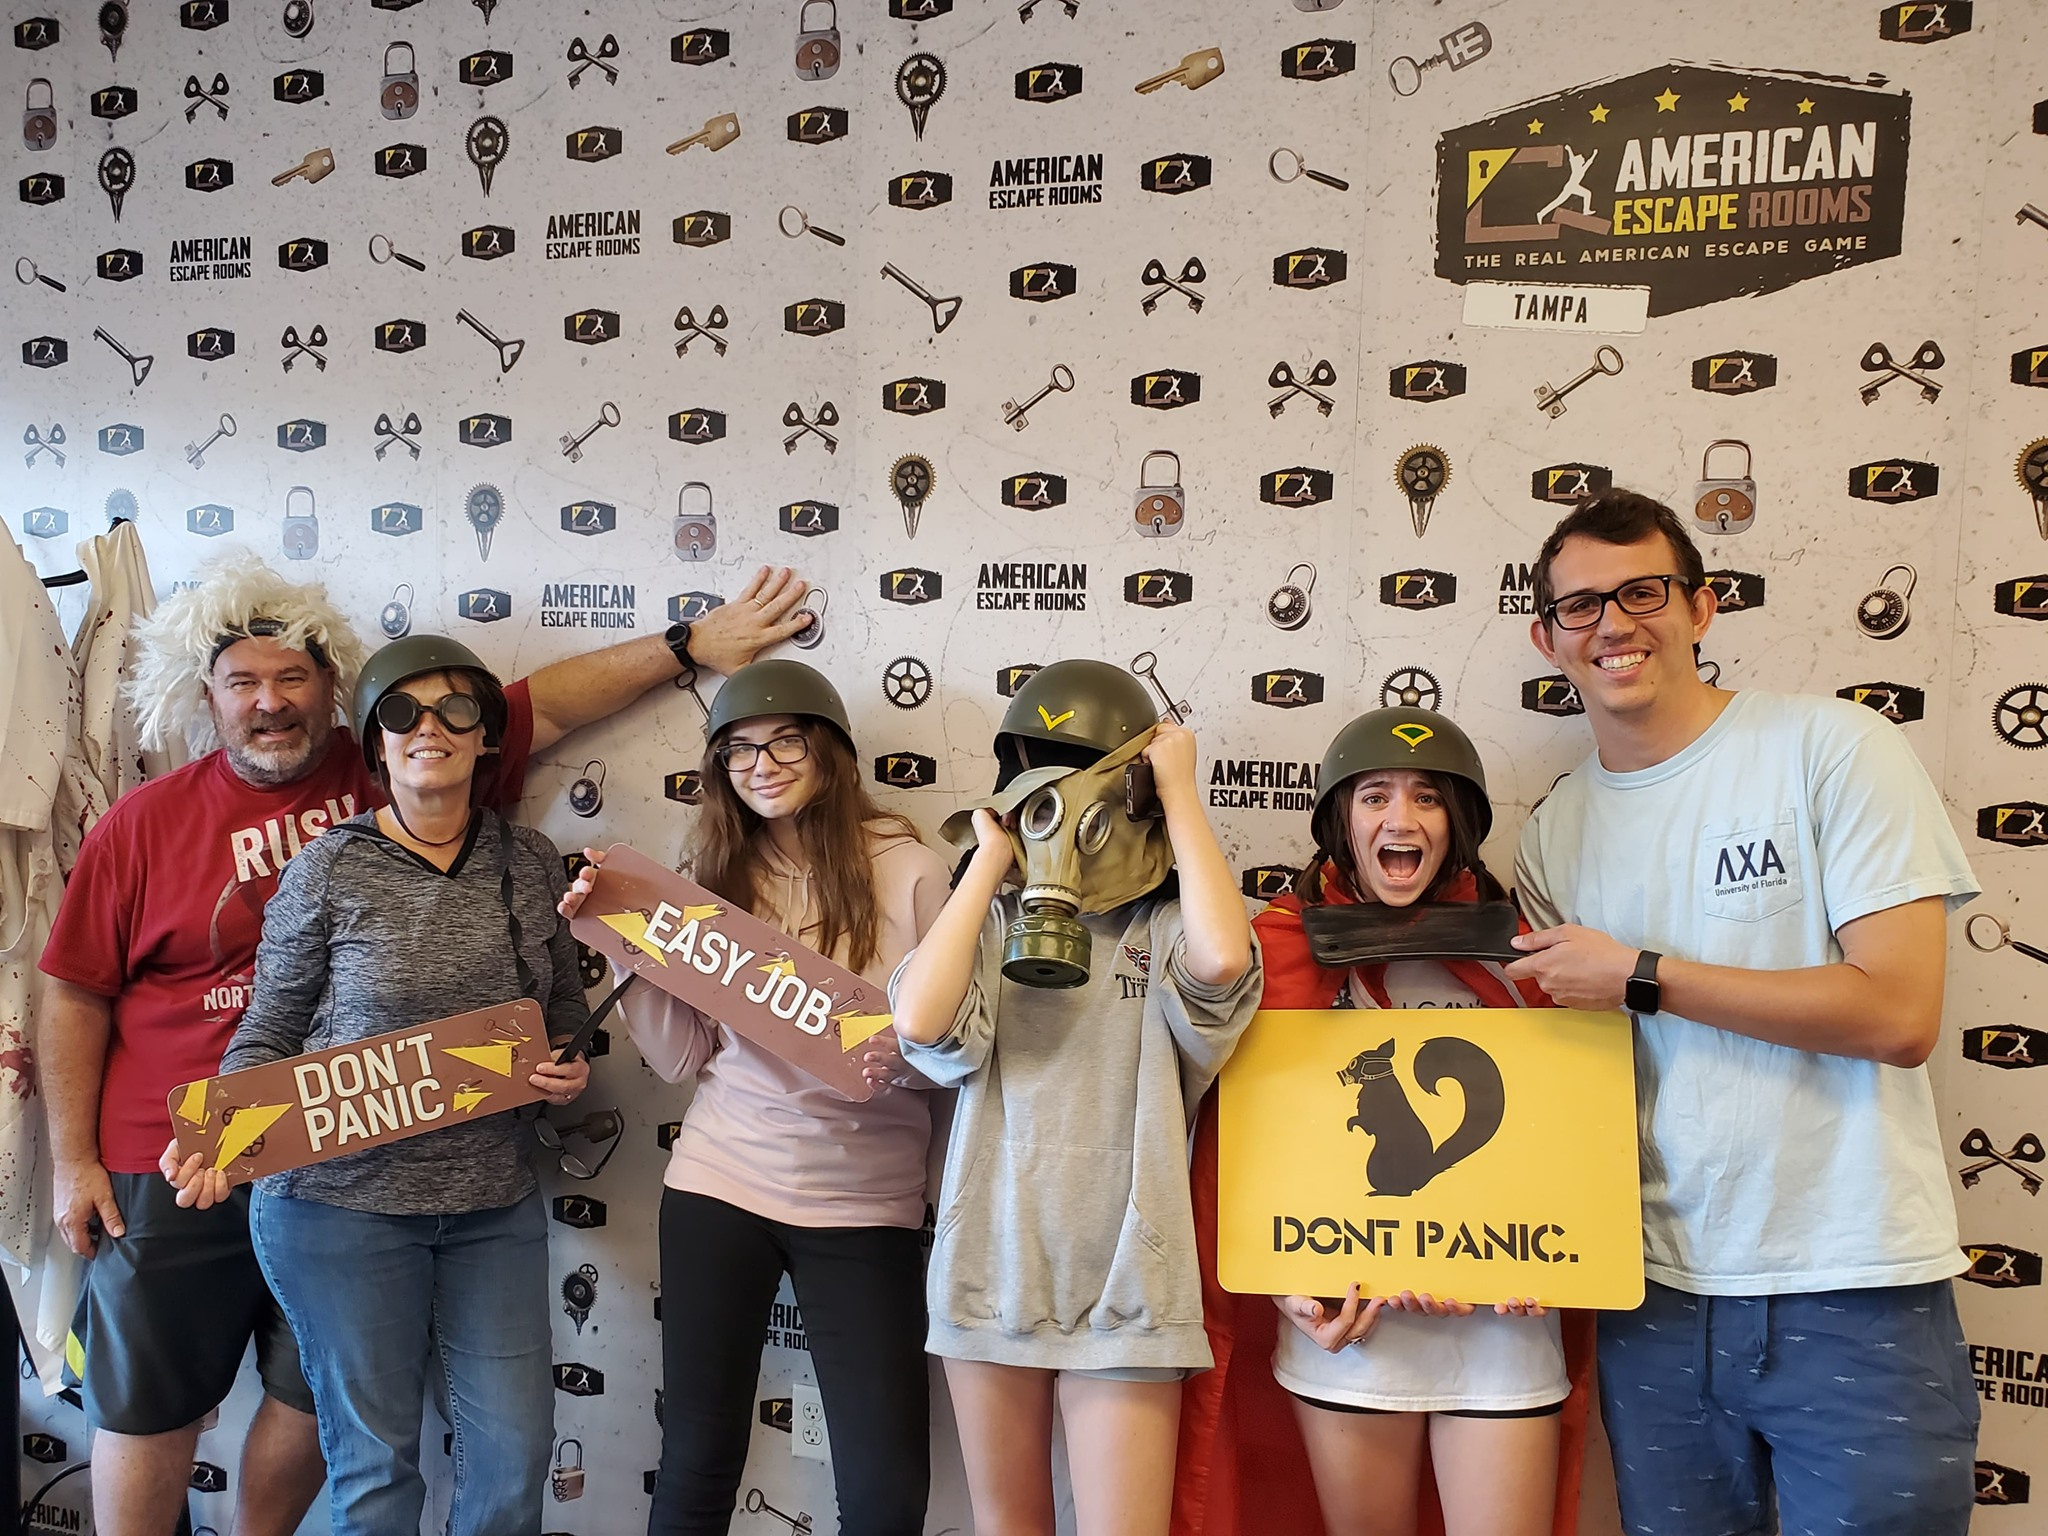 The Crusaders Save The World played the Zombie Apocalypse - Tampa and finished the game with 5 minutes 15 seconds left. Congratulations! Well done!